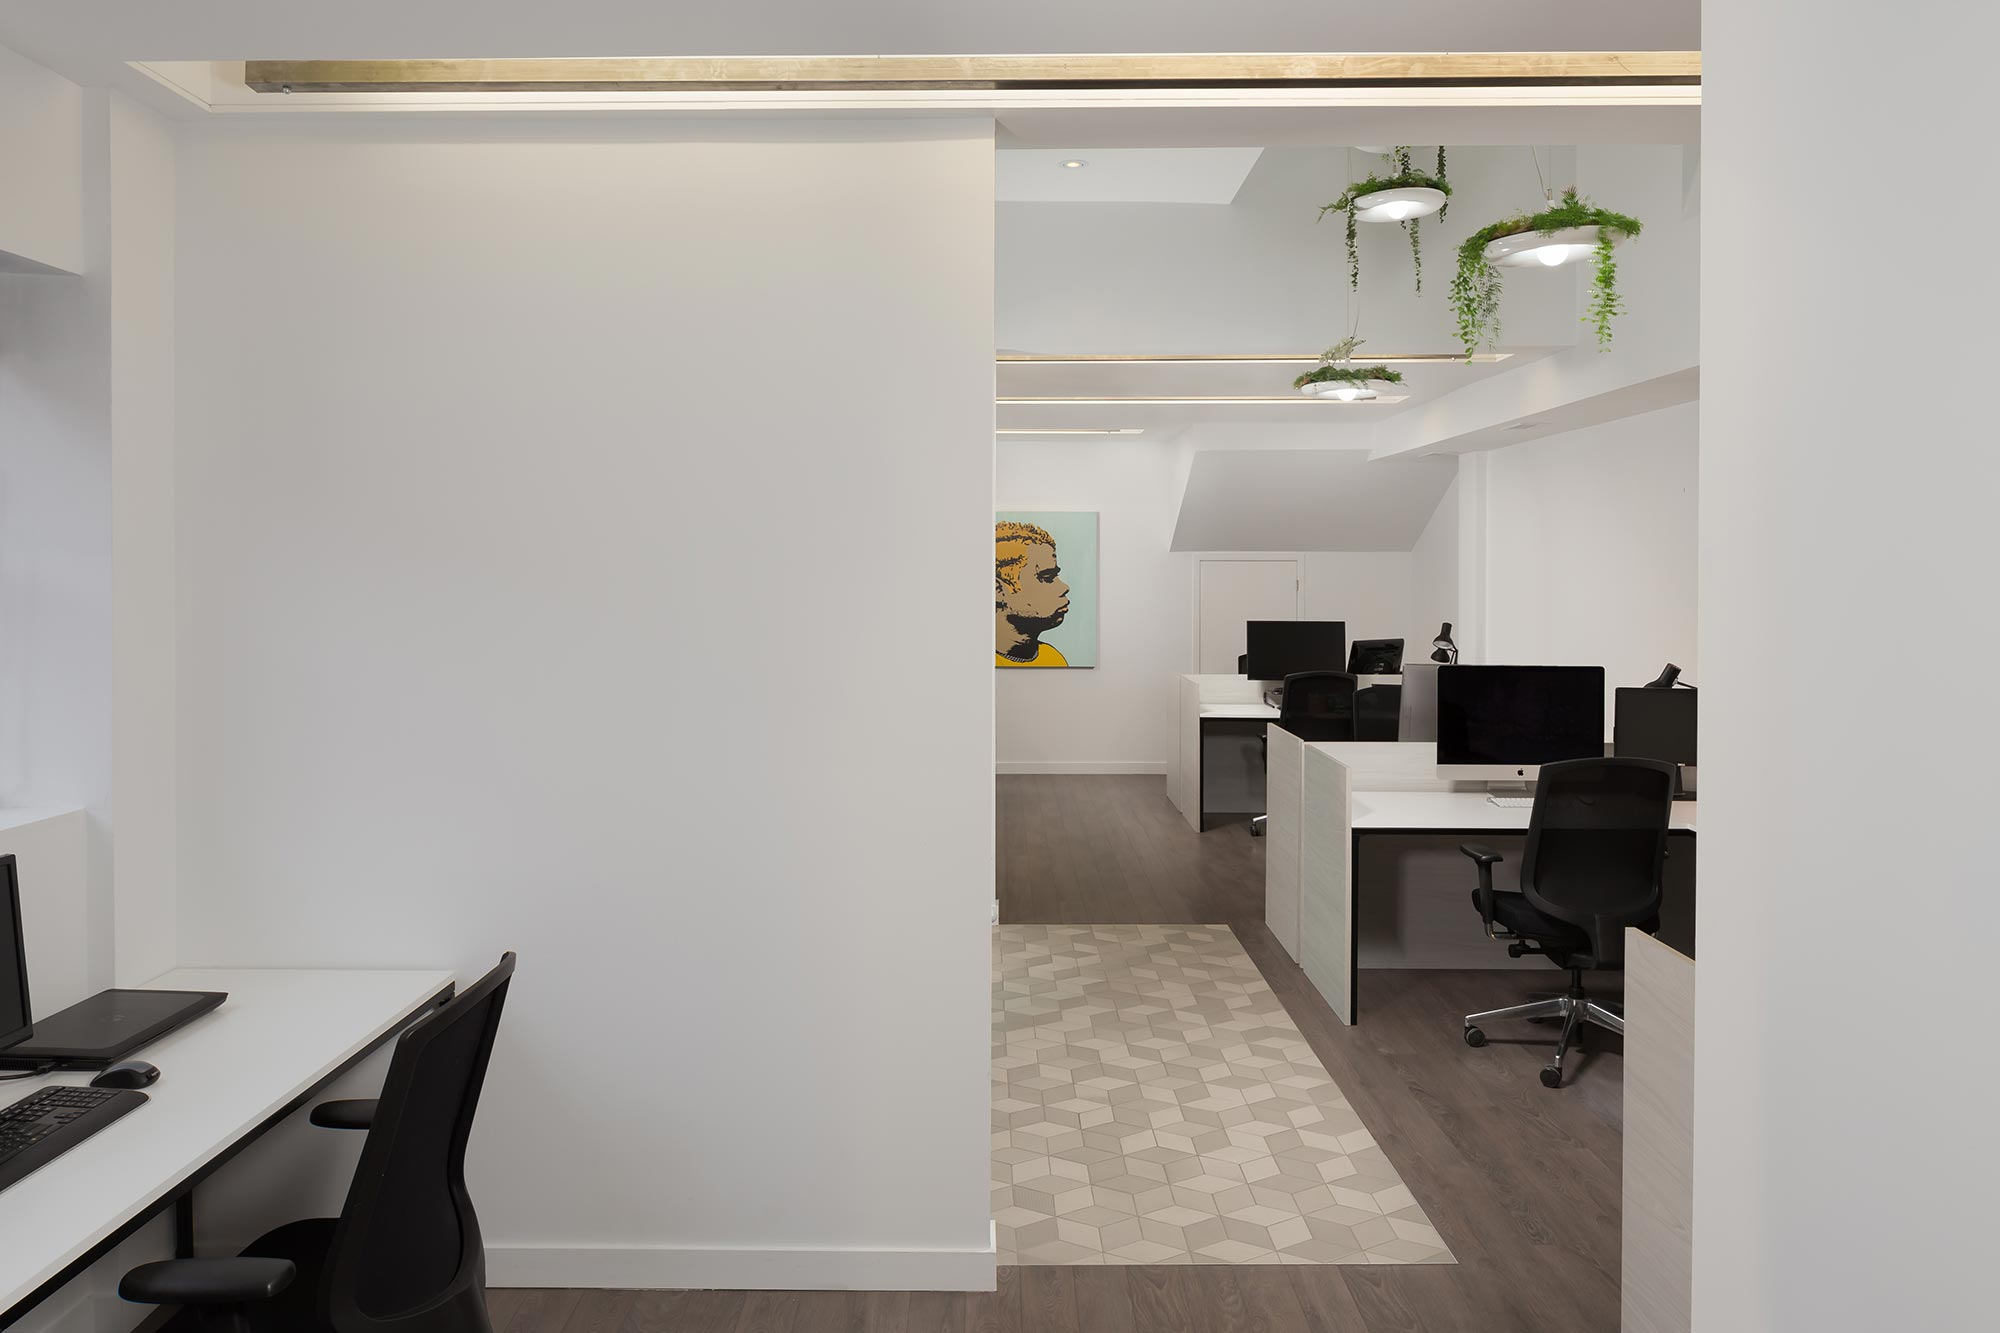 005-Mi-Fold-Co-working-Space-High-Res.jpg